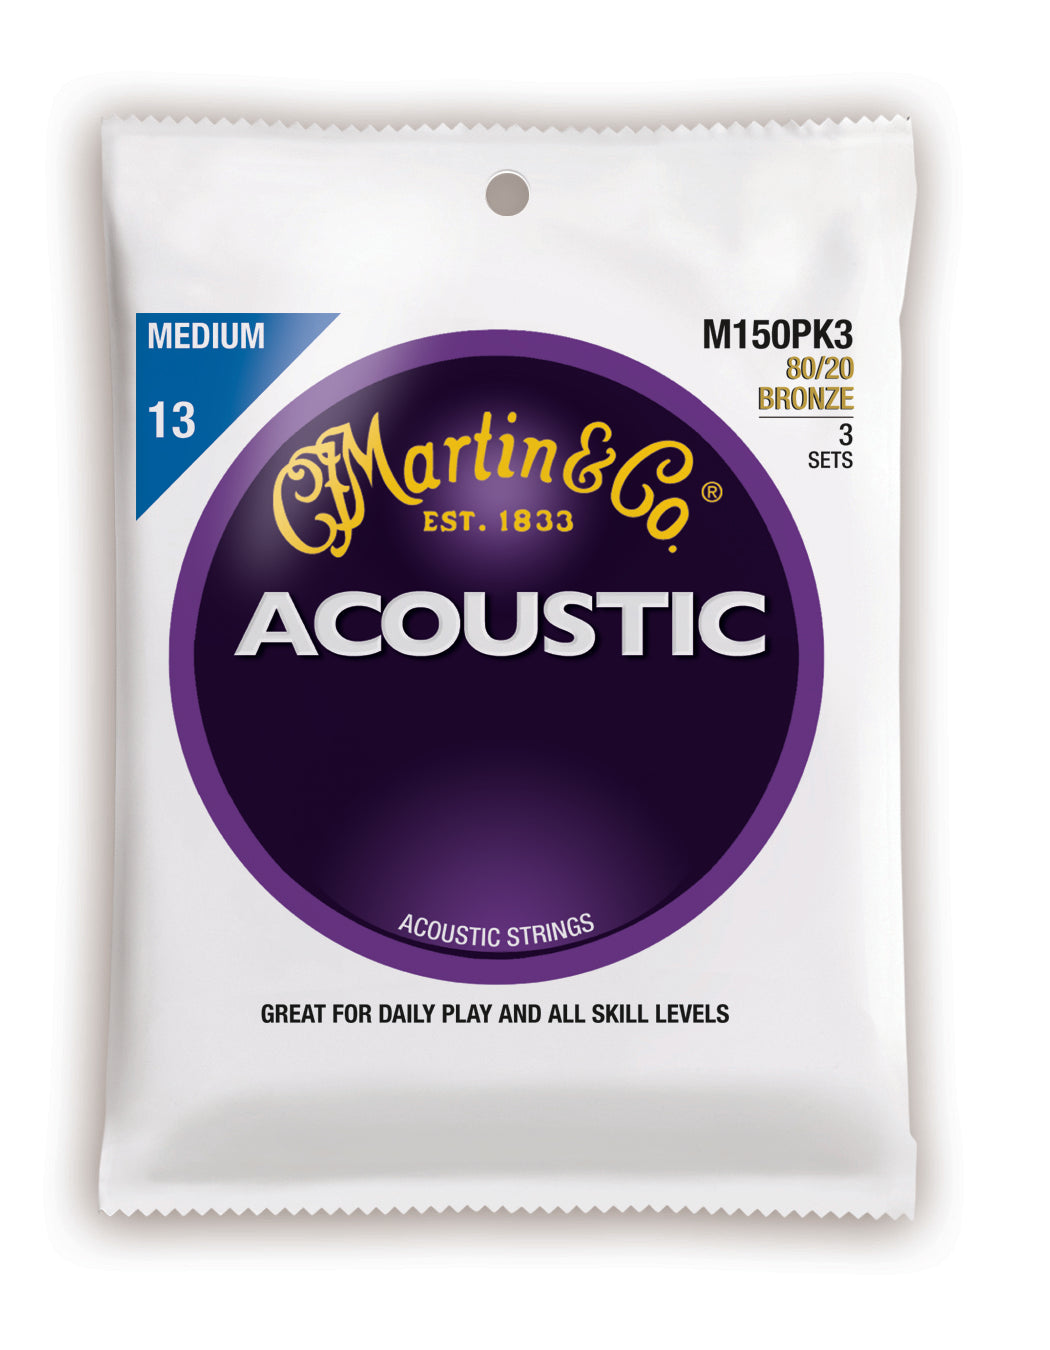 Martin Acoustic 80/20 Bronze Guitar Strings -.013-.056 Medium - 3 Pack